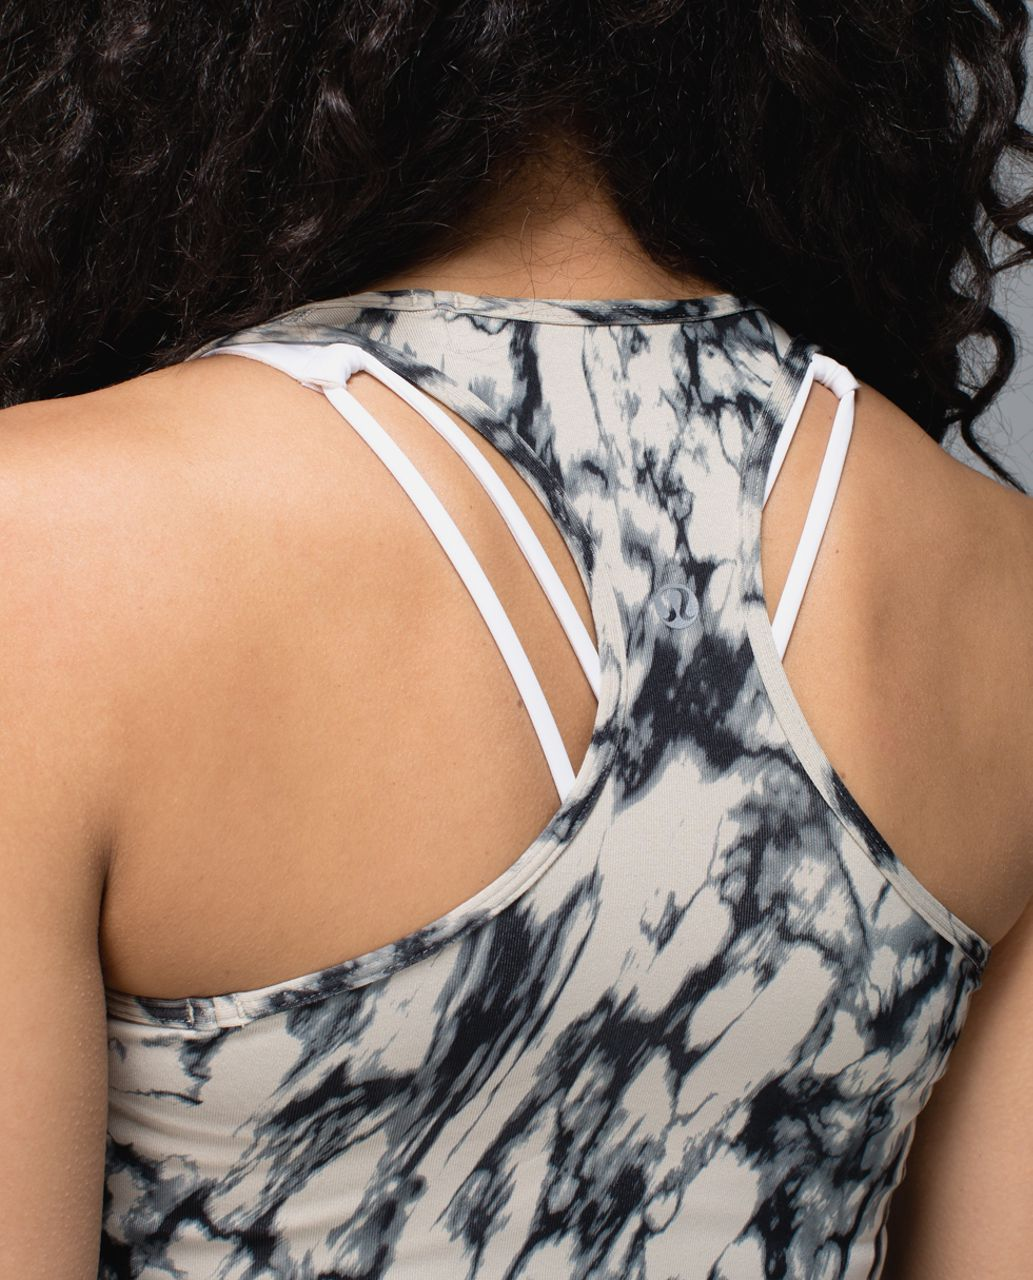 Lululemon Cool Racerback - Great Granite Black Mojave Tan